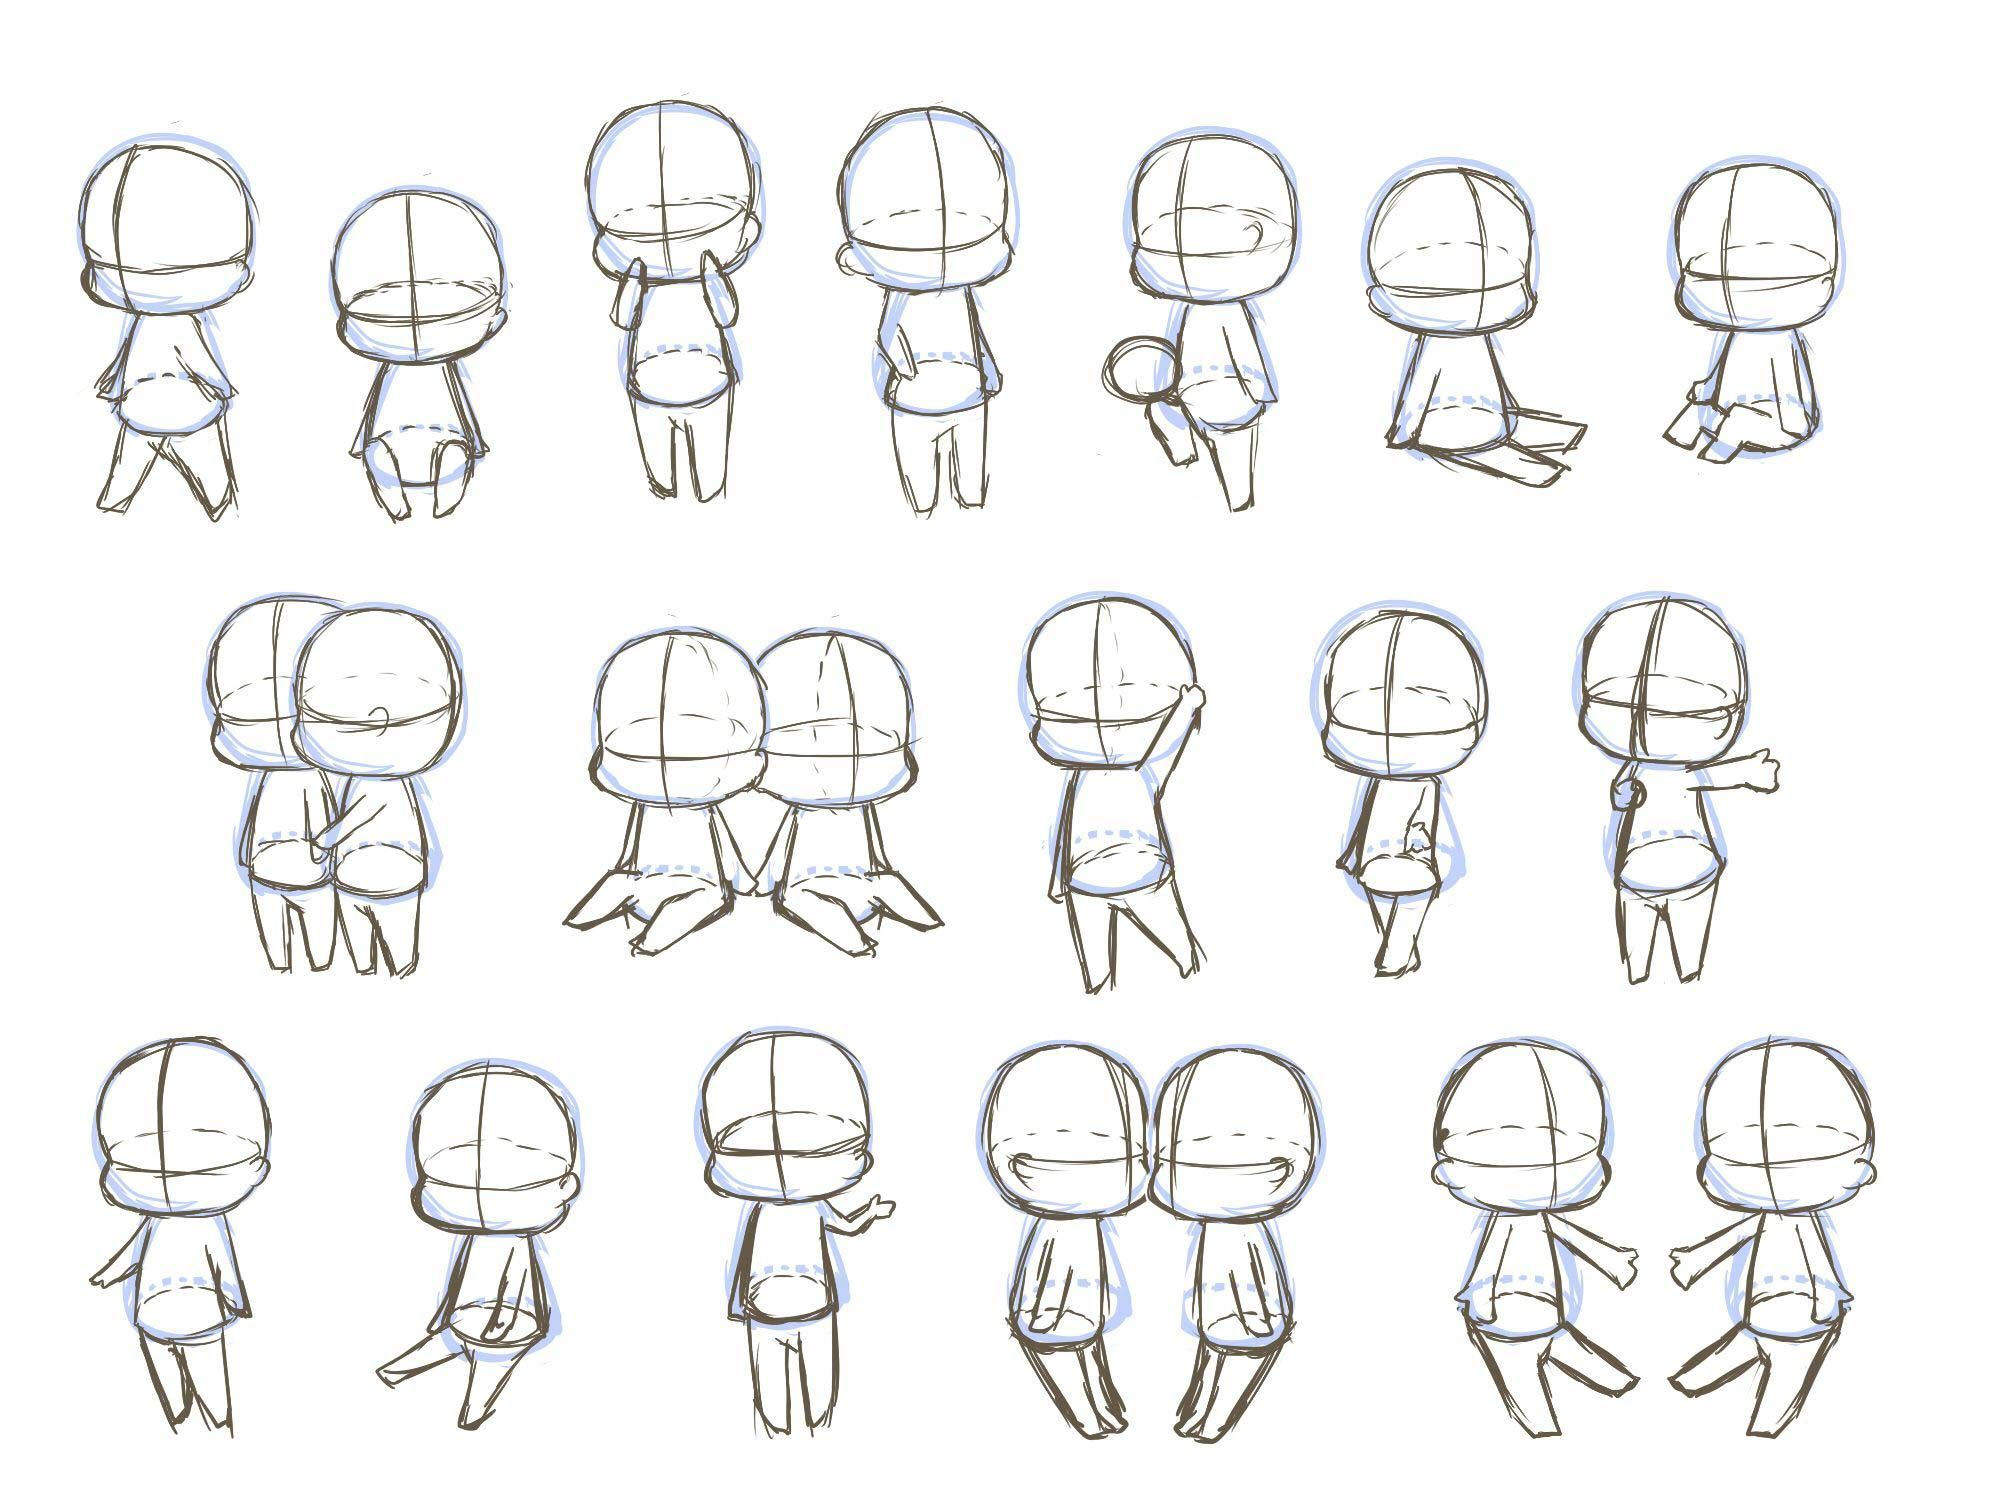 Chibi Drawing Reference And Sketches For Artists In 2020 Chibi Sketch Chibi Drawings Chibi Body